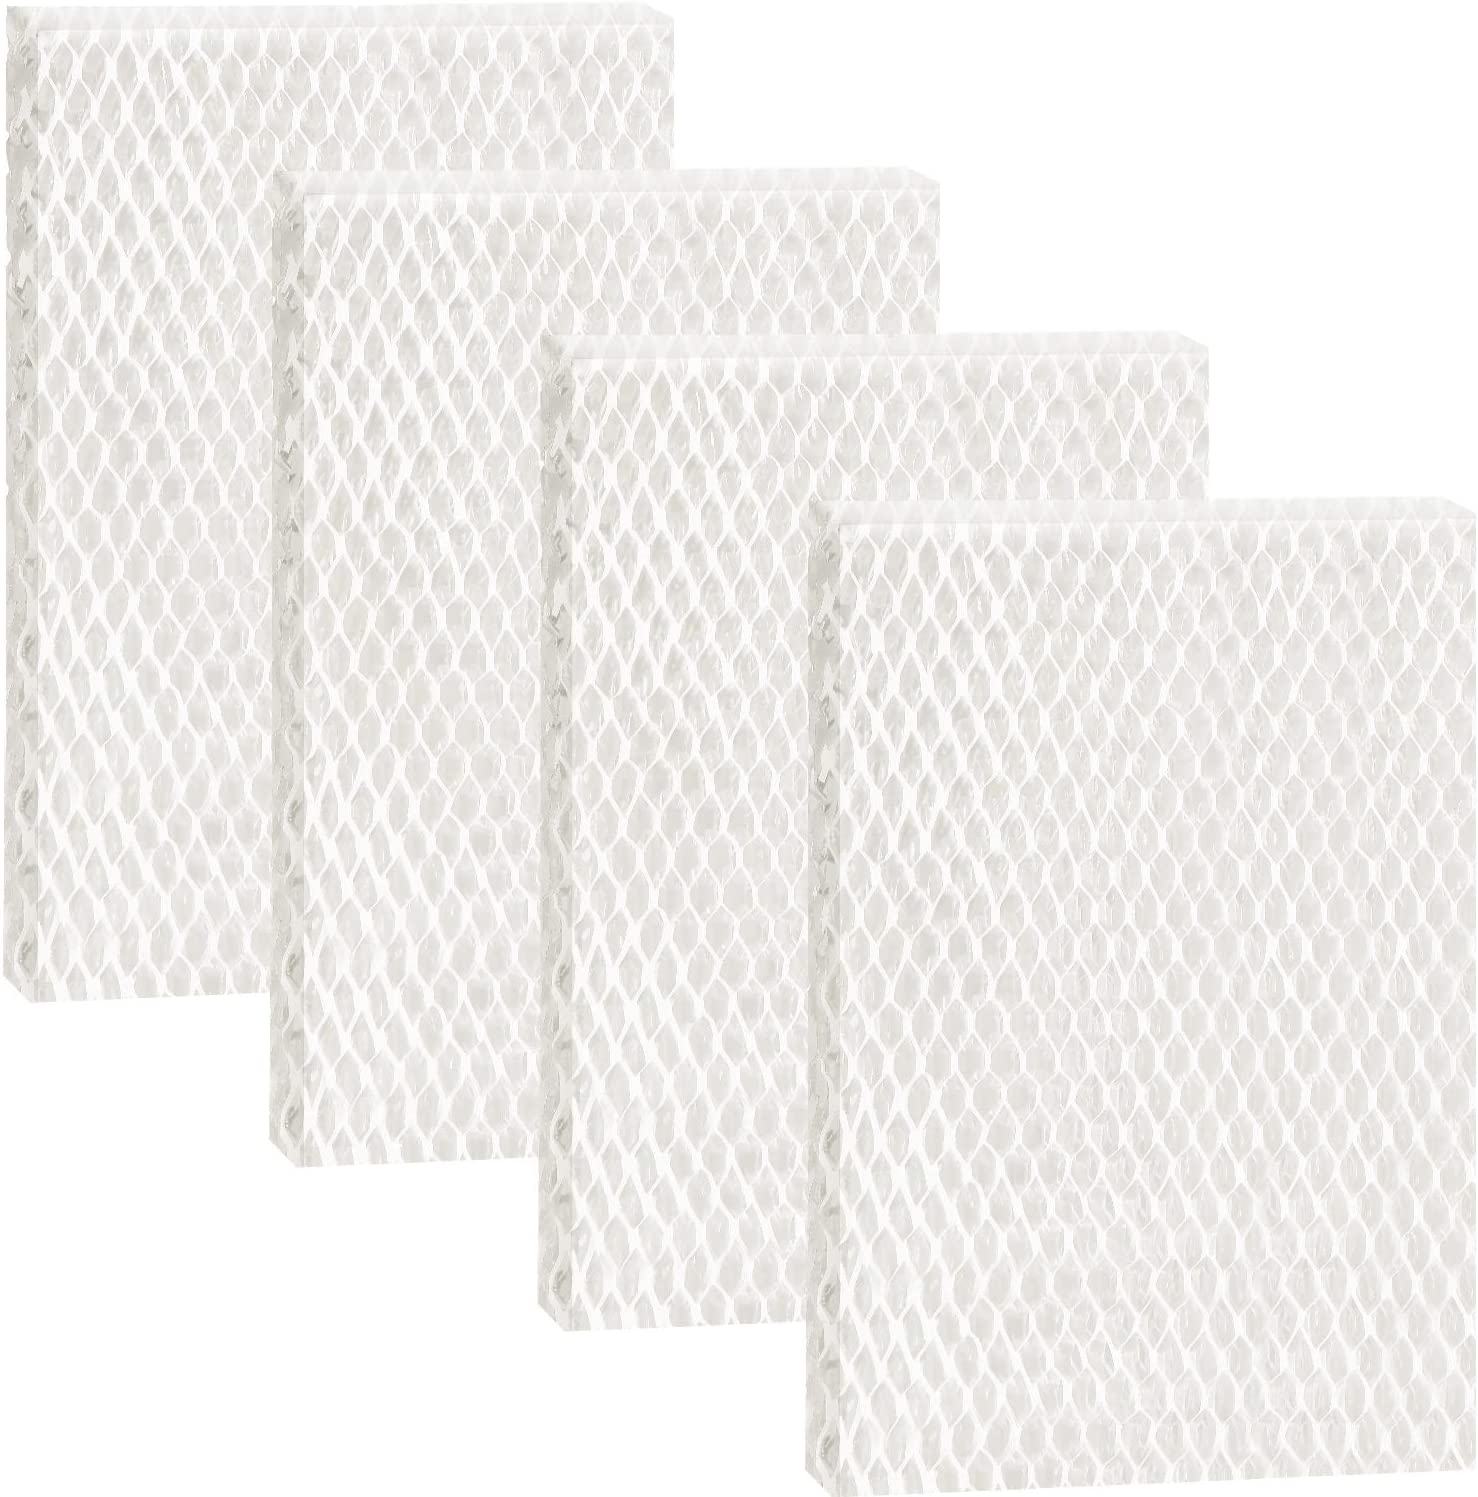 Outus 4 Pieces Humidifier Wicking Filter Replacement Humidifier Wick, Compatible with Honeywell Humidifier HAC-700, HAC-700V1, HAC700PDQV1